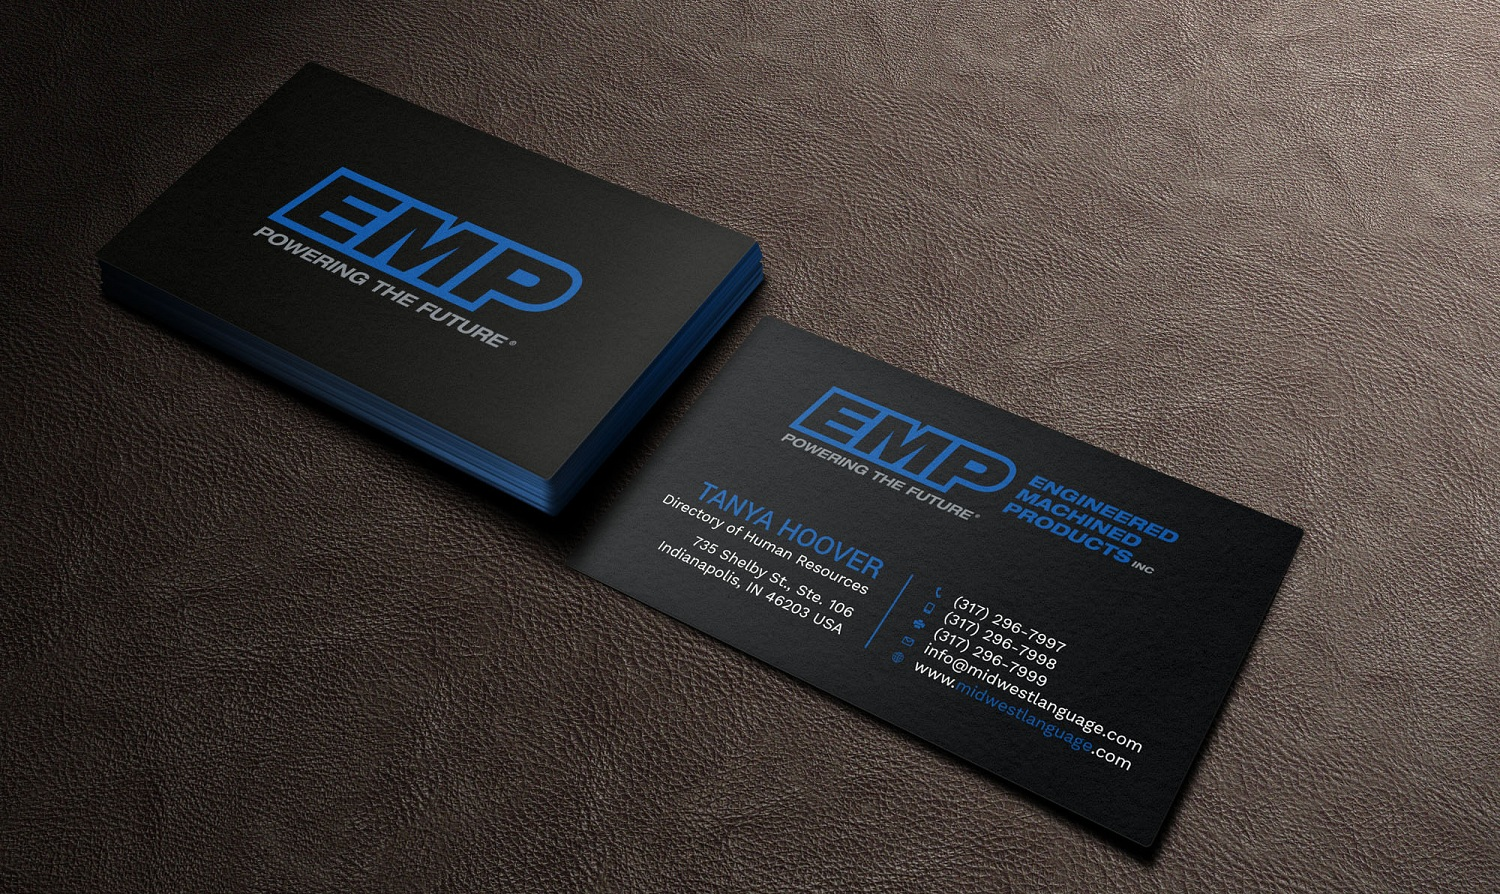 Bold serious engineering business card design for engineered bold serious engineering business card design for engineered machined products inc in united states design 17745054 reheart Choice Image